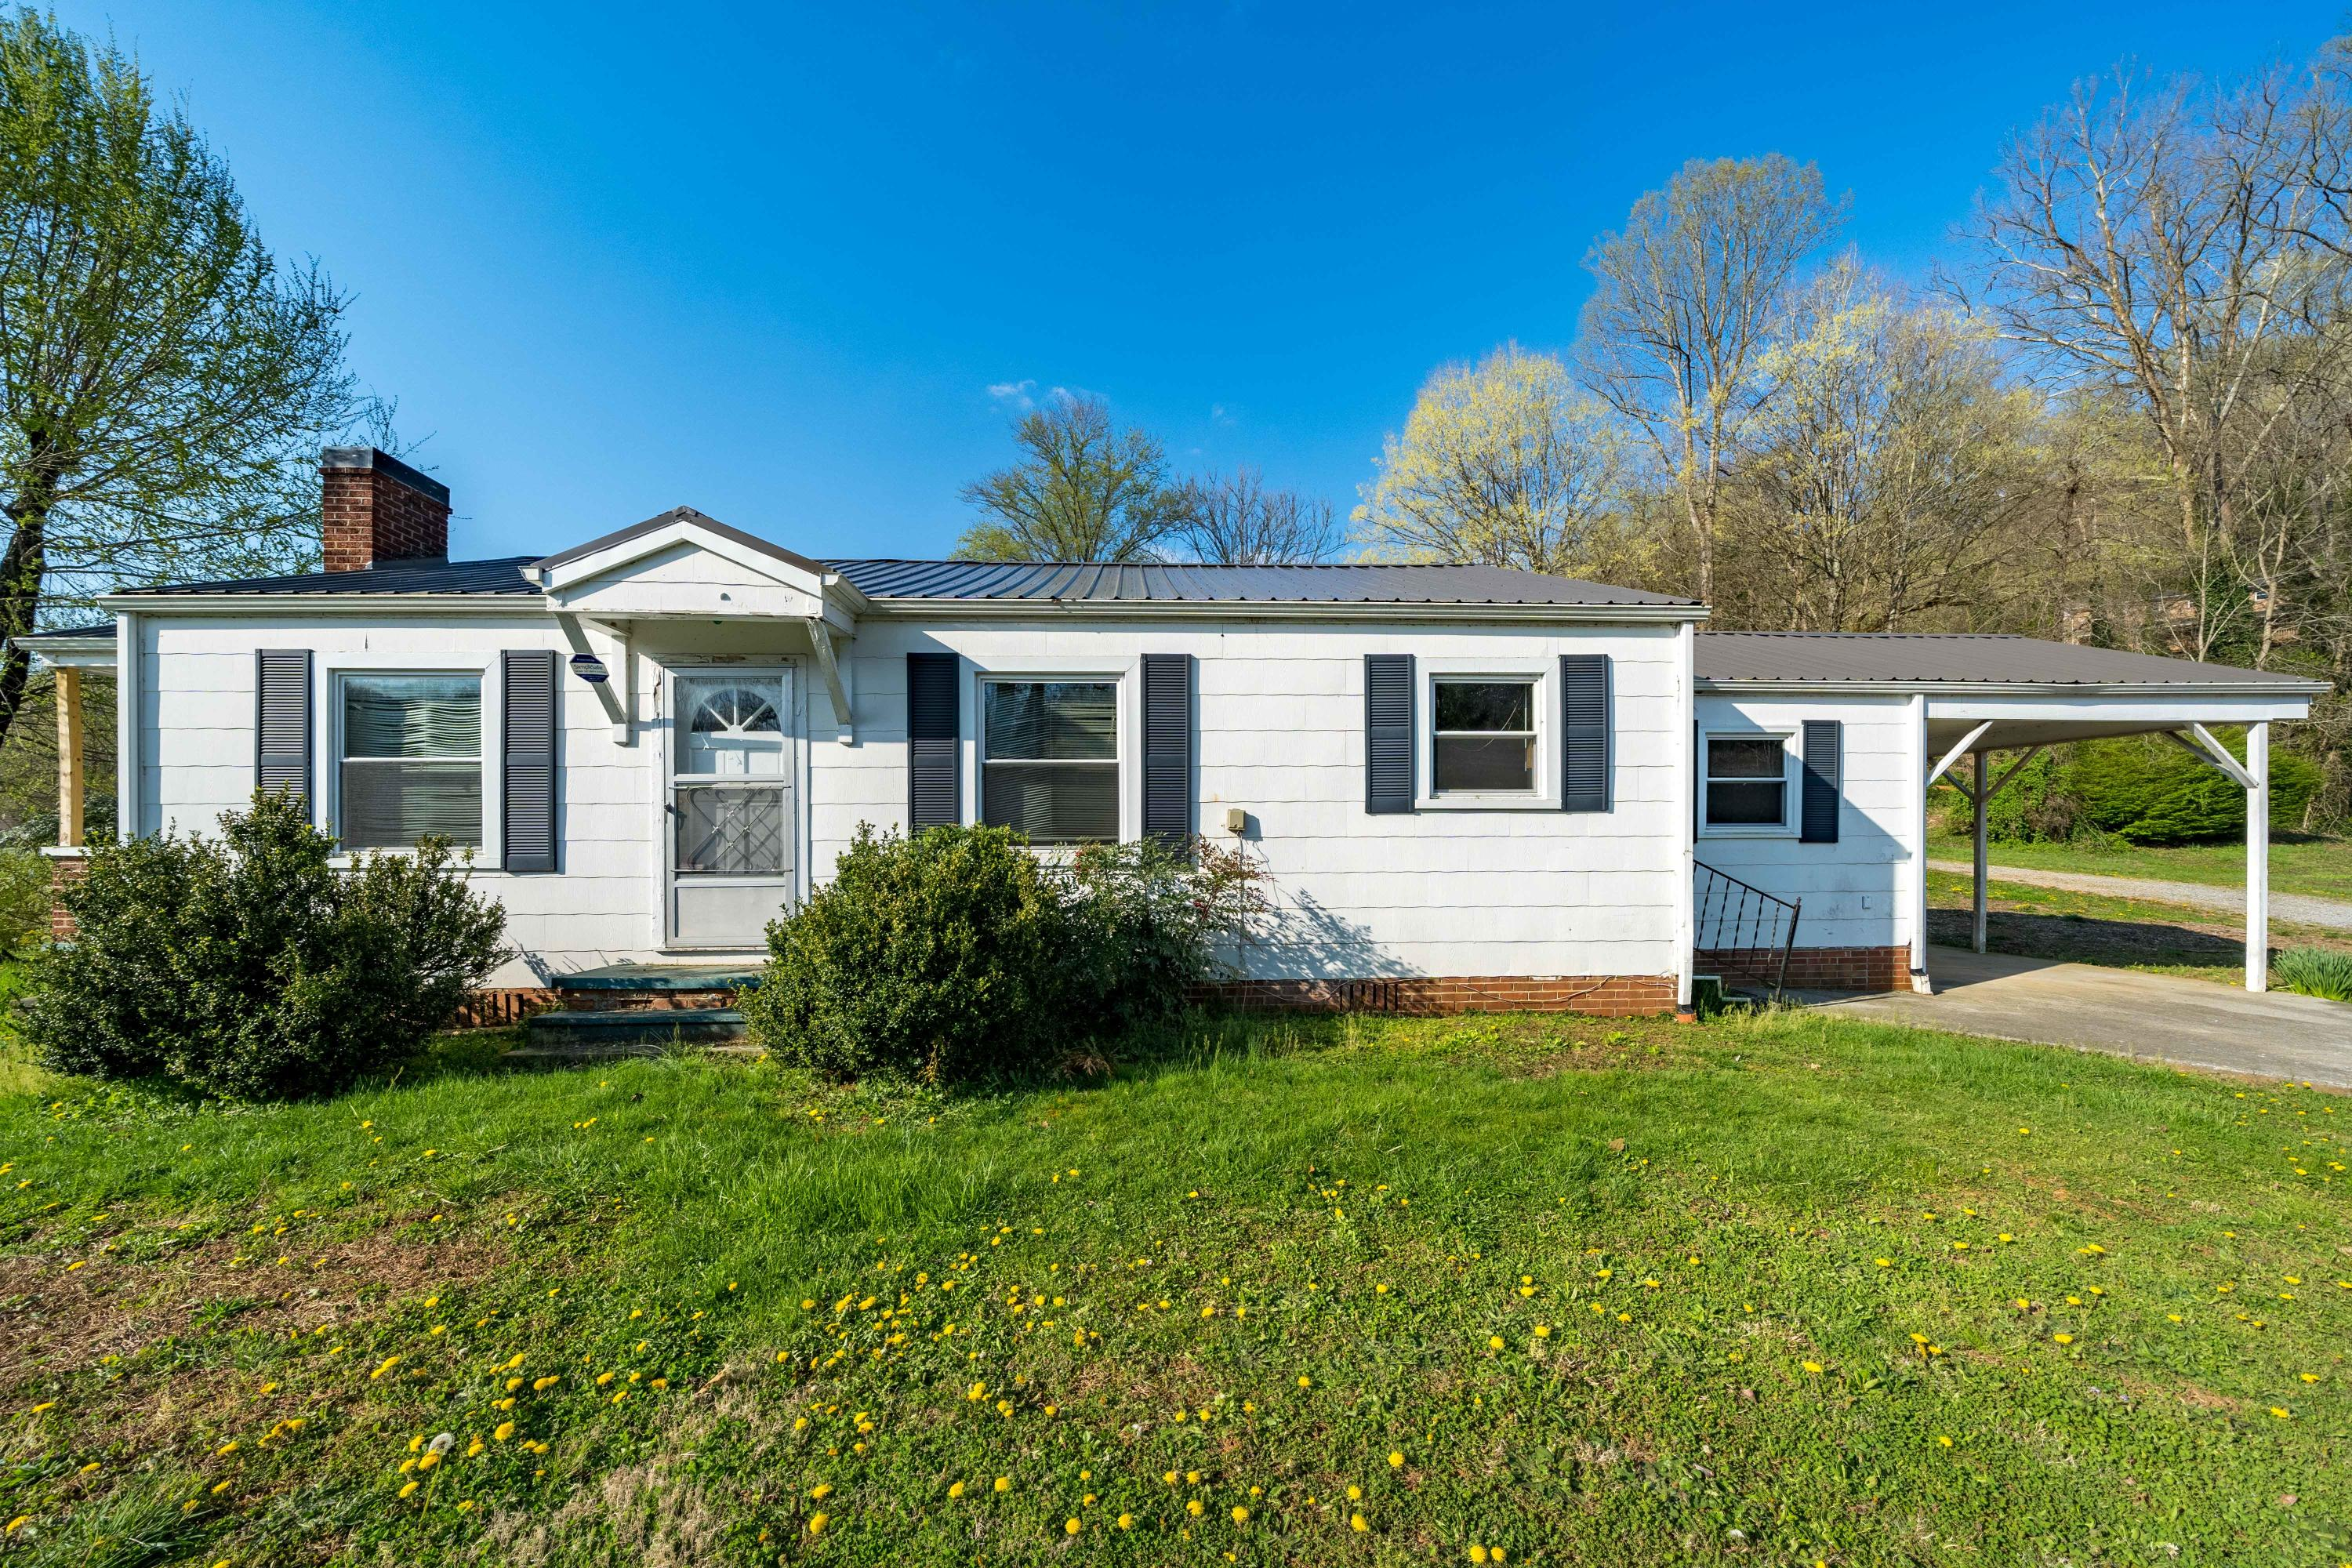 5270 Fort Henry Drive, Kingsport, Tennessee 37663, 3 Bedrooms Bedrooms, ,2 BathroomsBathrooms,Single Family,For Sale,5270 Fort Henry Drive,9920880